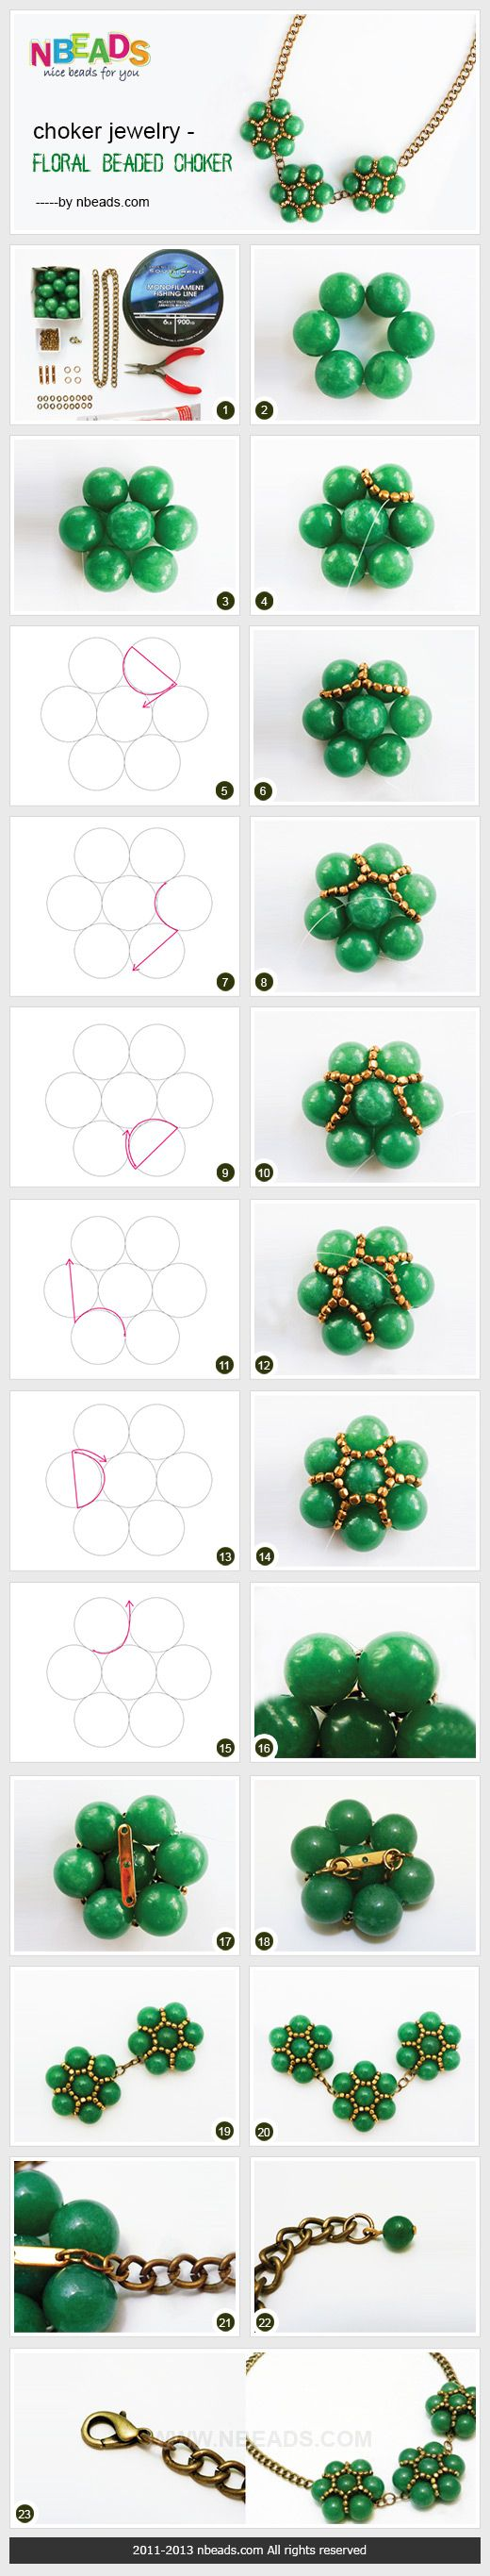 24 best Jewelrly images on Pinterest | Beads, Crafts and Jewelry